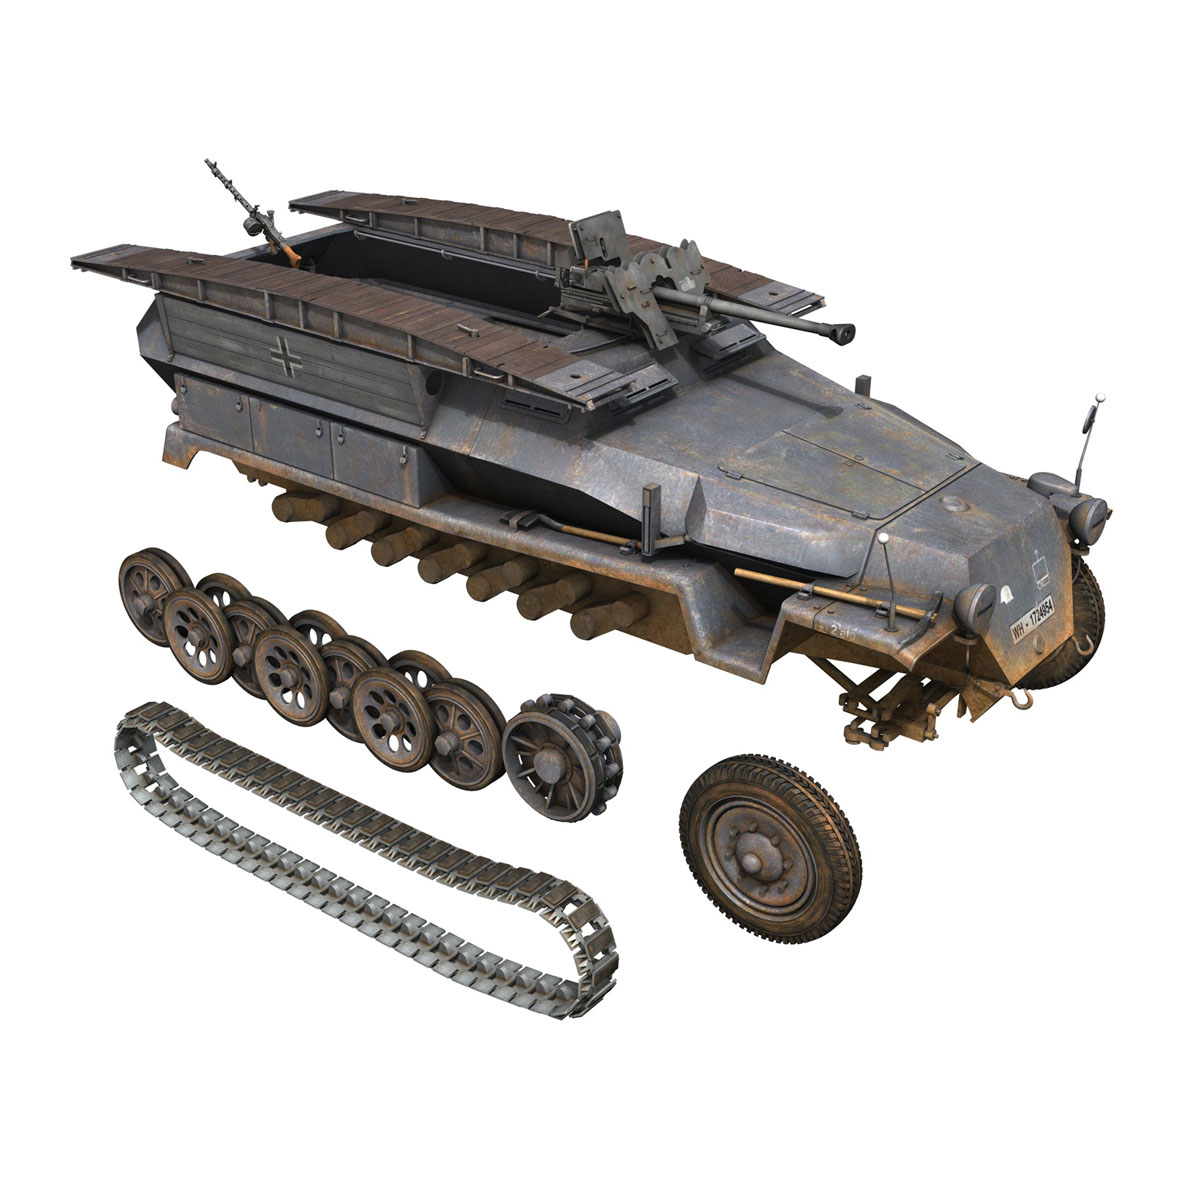 sd.kfz 251/7 ausf.c – pioneer assault bridge 3d model 3ds fbx c4d lwo obj 201527